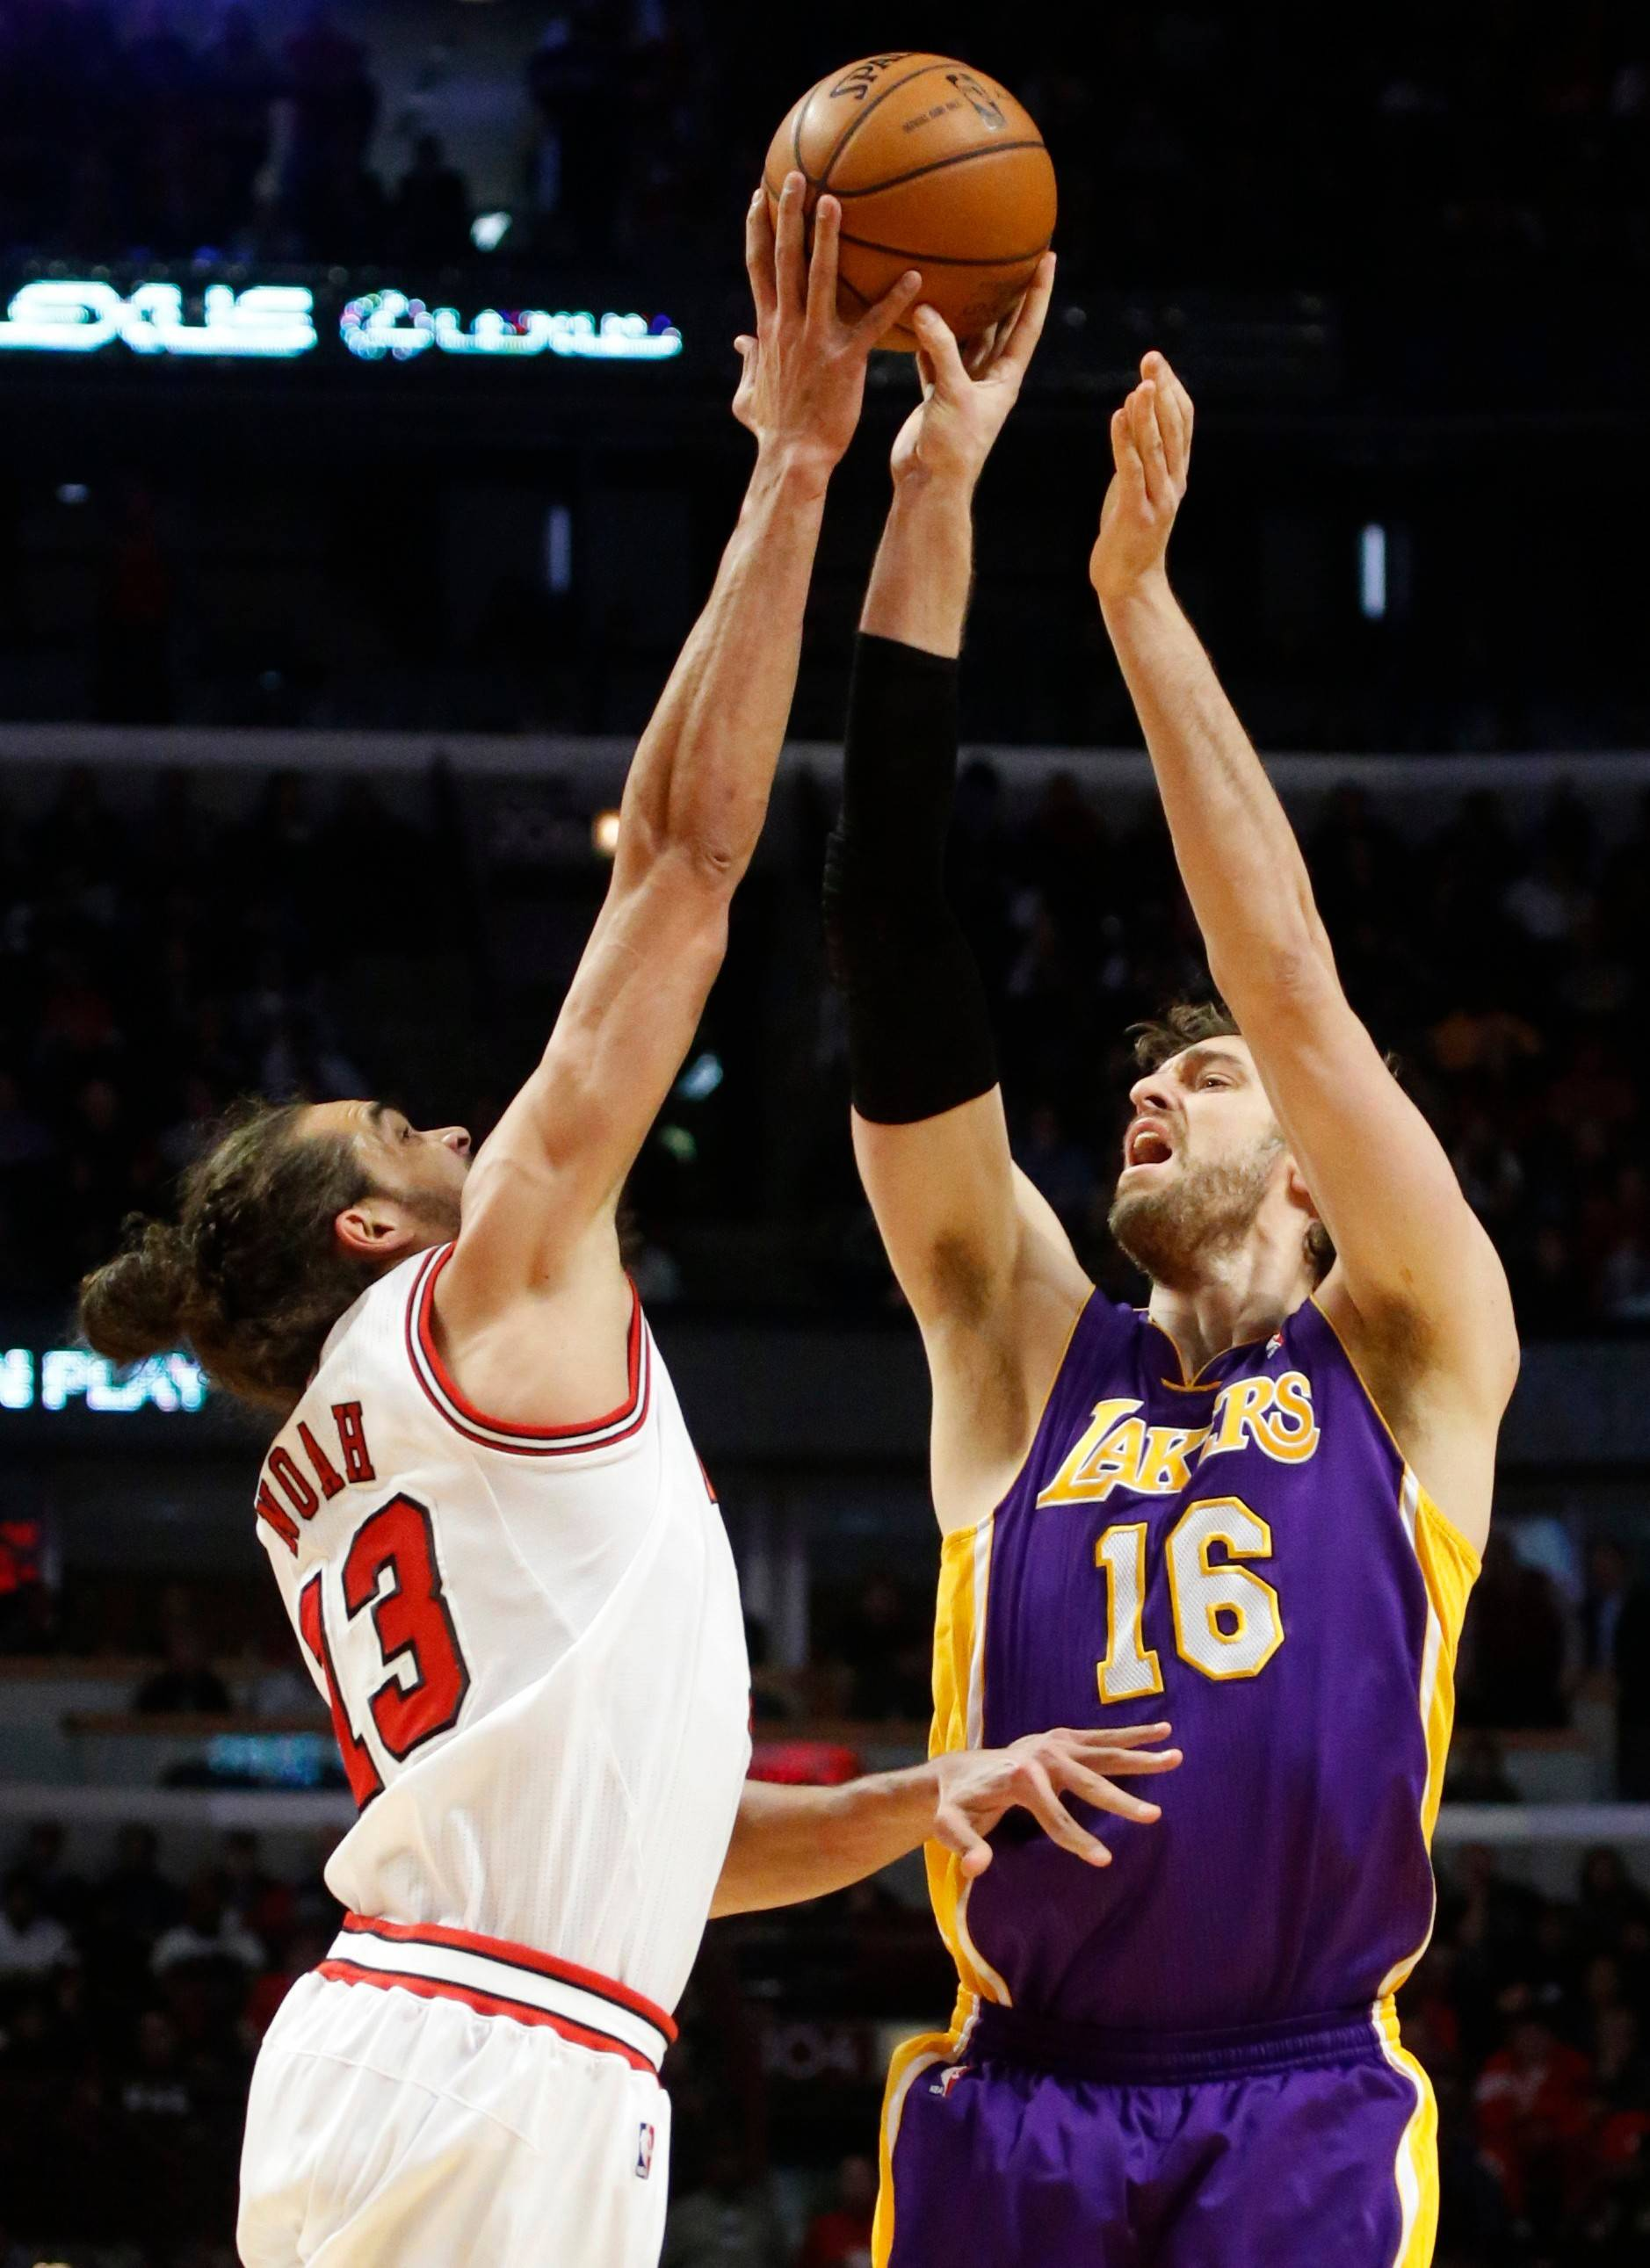 The Bulls' Joakim Noah blocks a shot from the Lakers' Pau Gasol. The Bulls plan to meet soon with Gasol, who is a free agent.